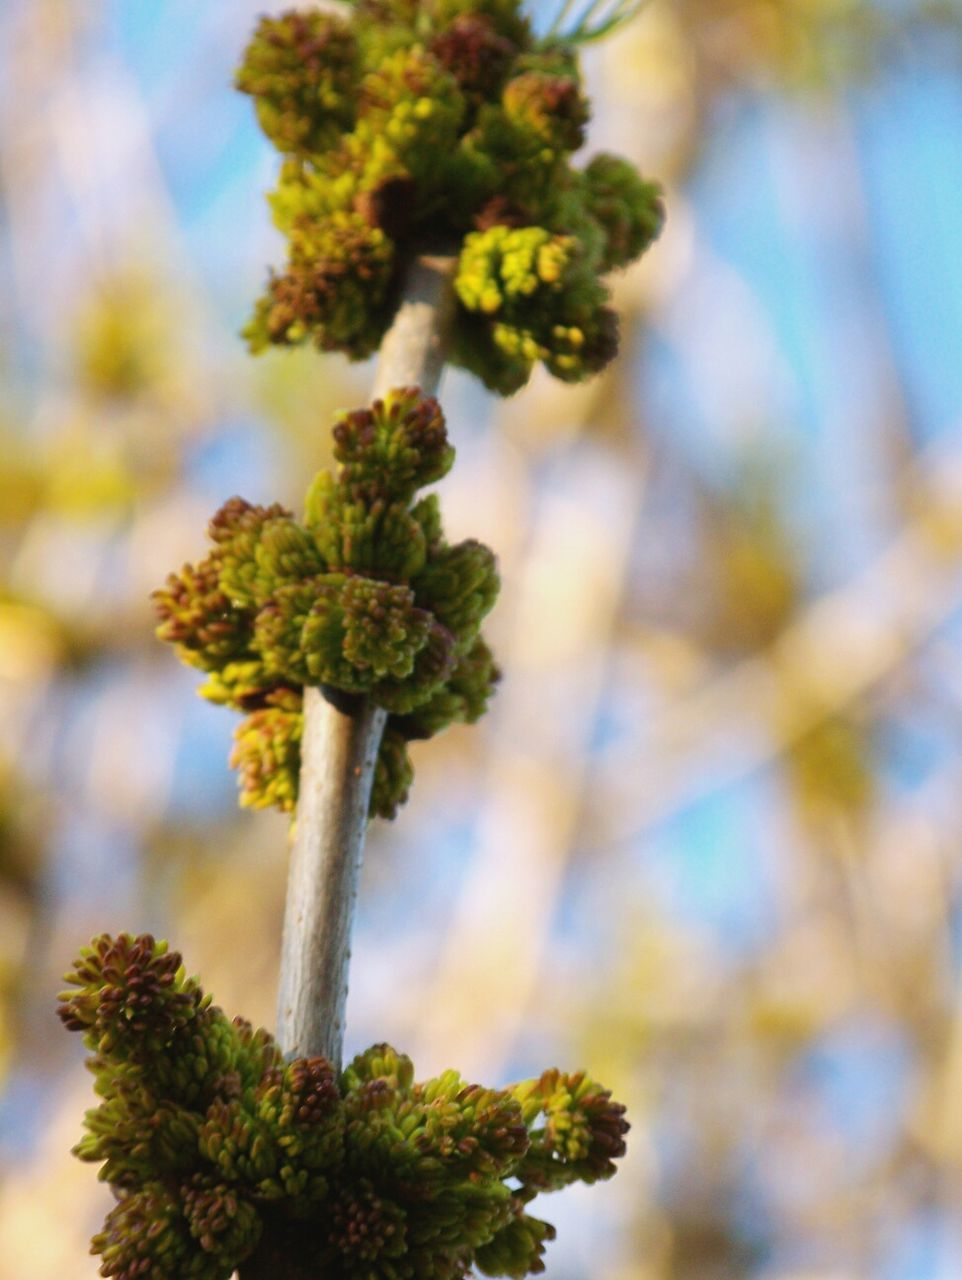 growth, no people, nature, focus on foreground, green color, plant, day, marijuana - herbal cannabis, close-up, outdoors, beauty in nature, tree, sky